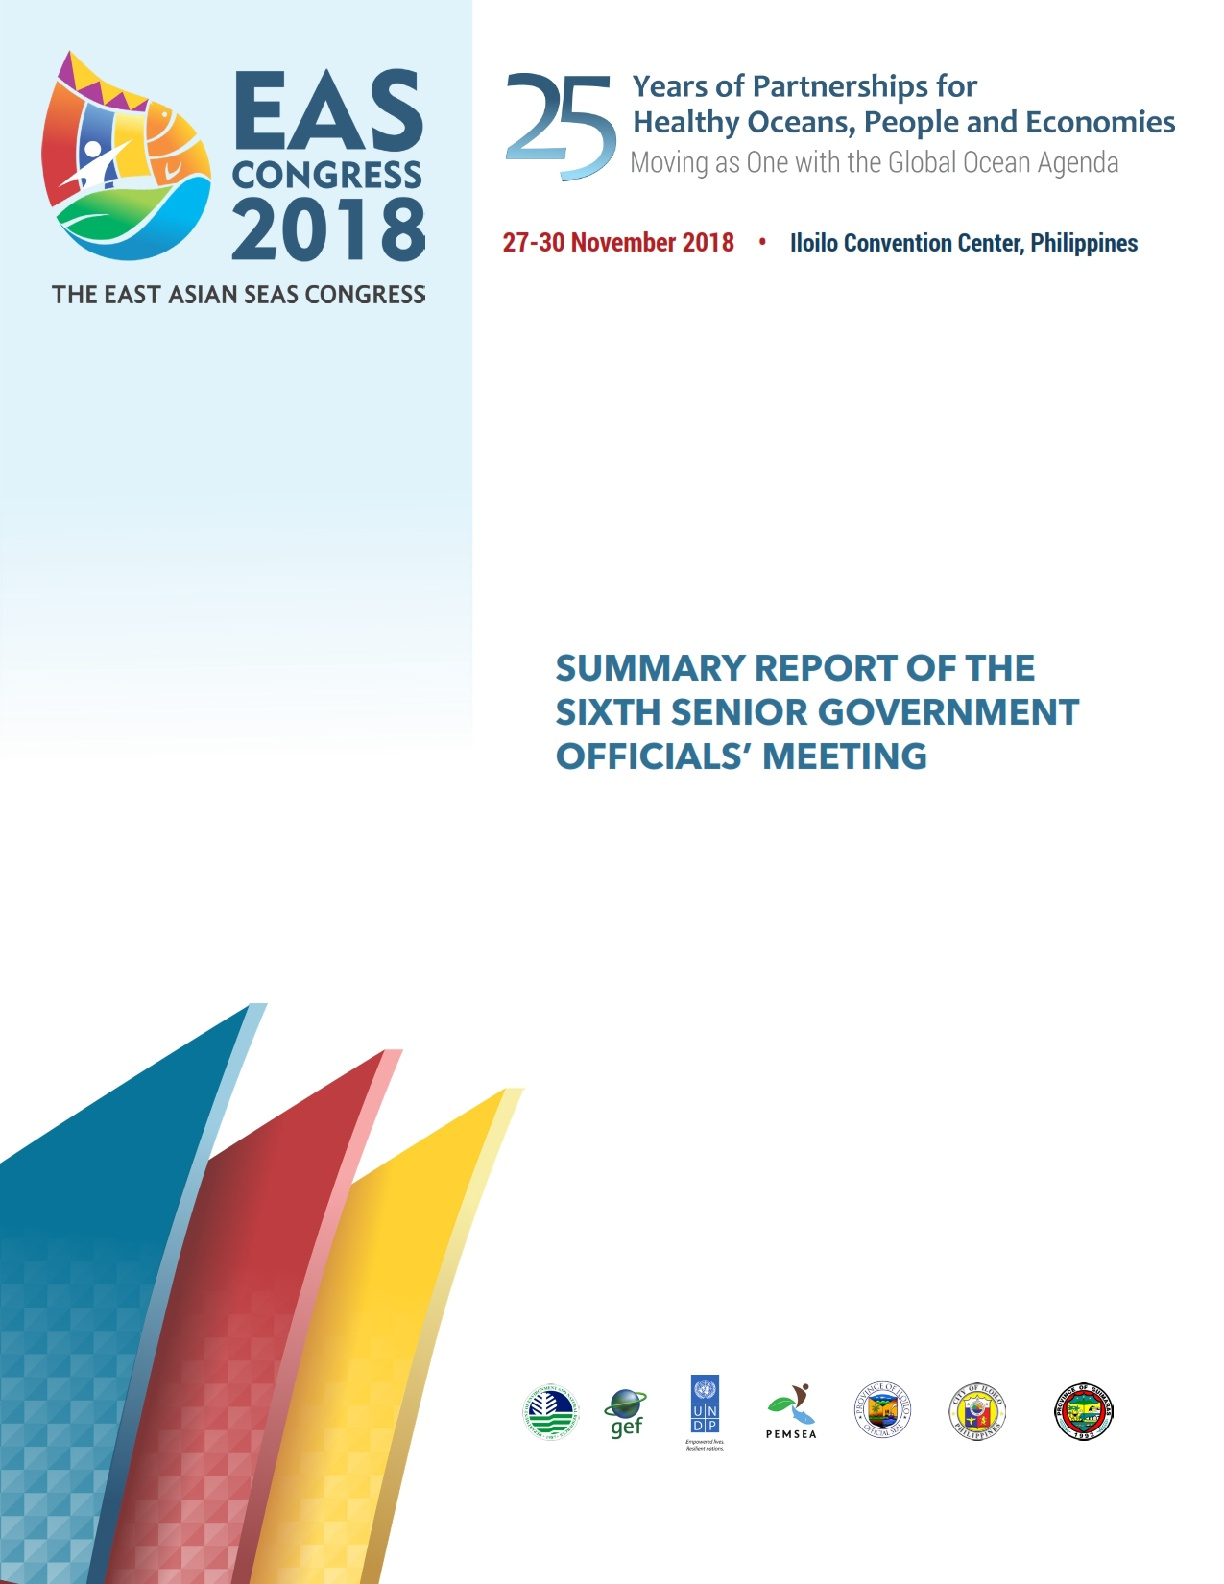 EASC 2018 Summary Report on Senior Government Officials' Meeting